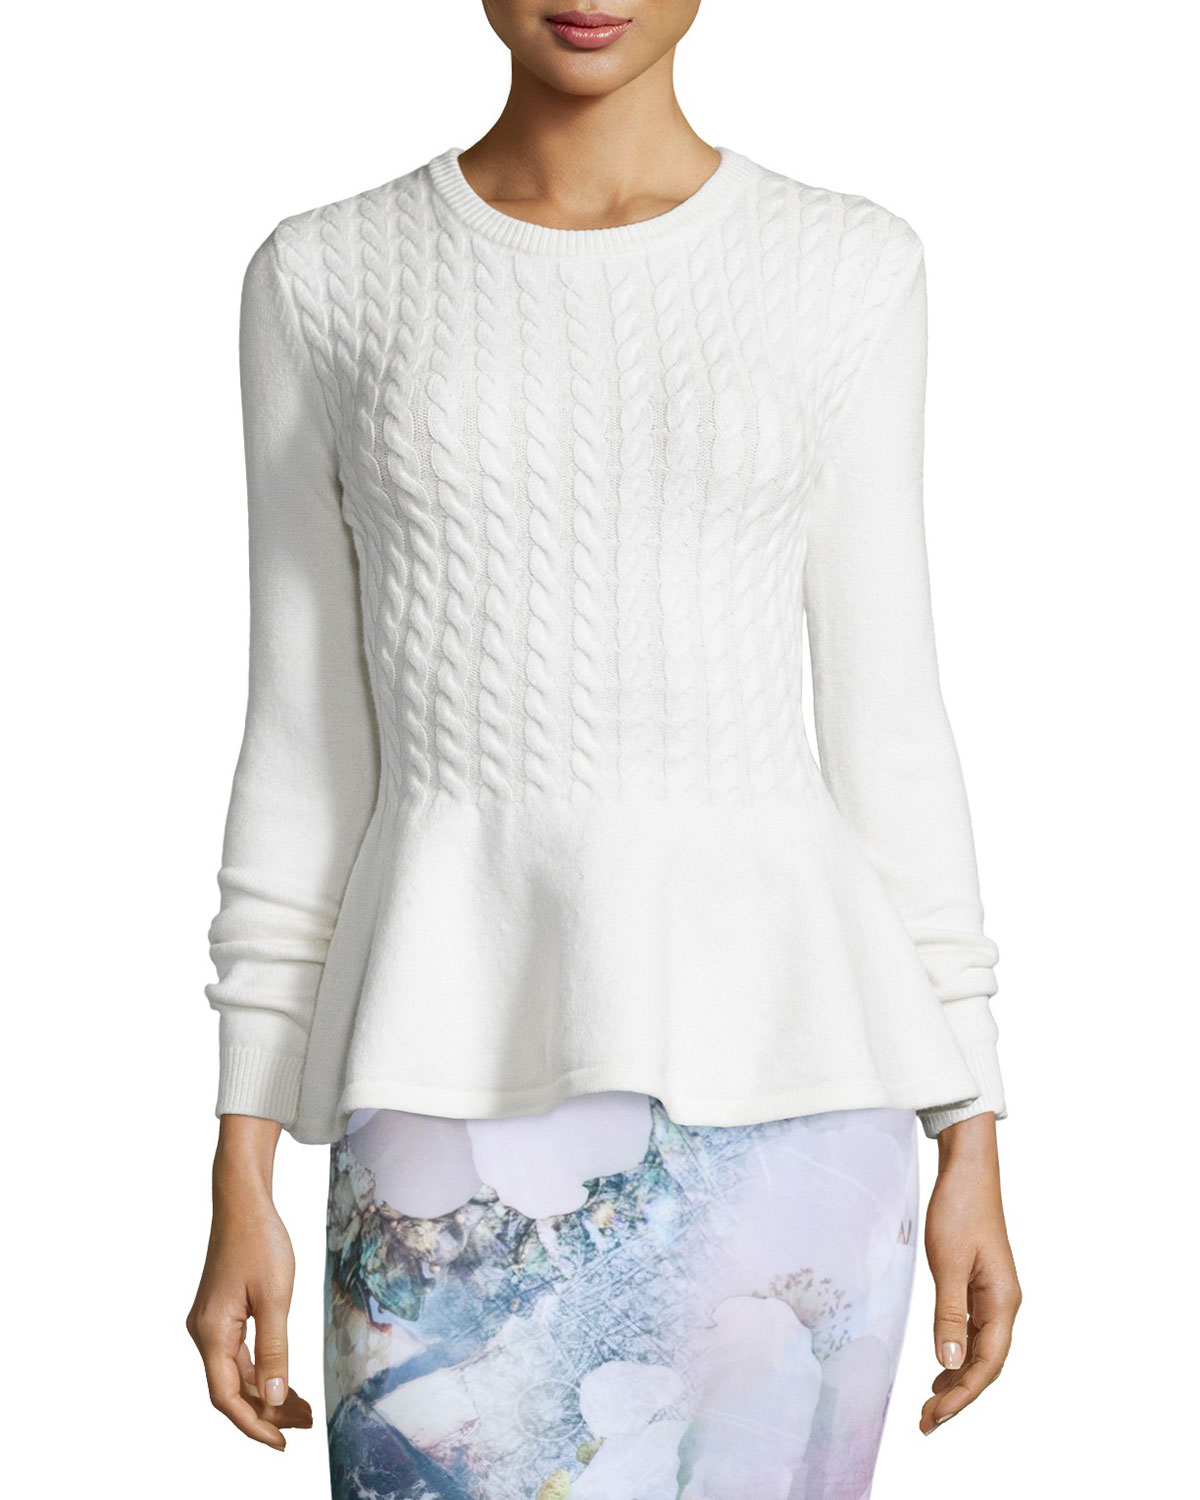 34c1ff8154e1 Ted Baker London Mereda Cable-Knit Peplum Sweater